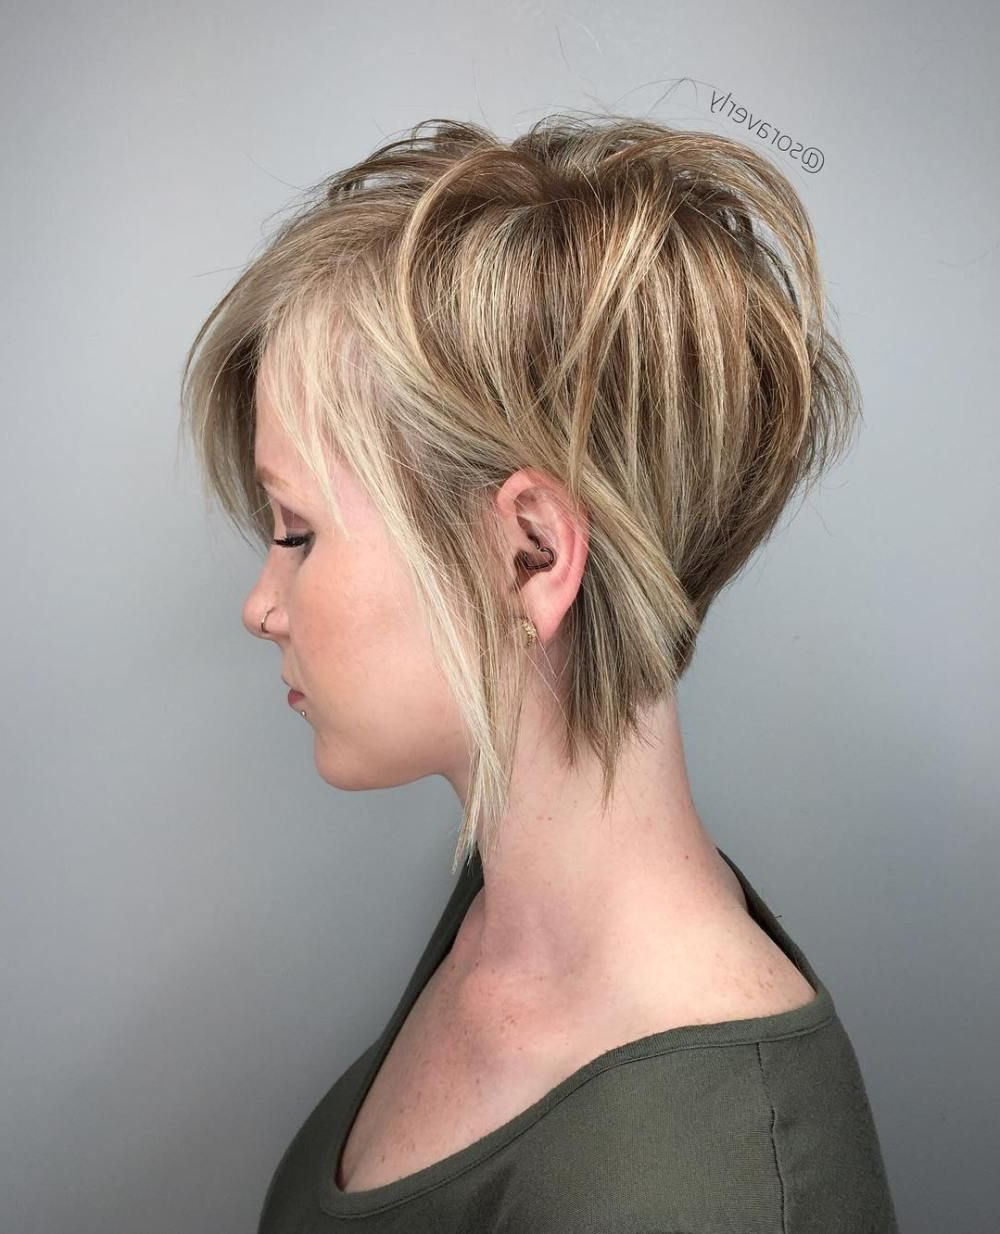 70 Cute And Easy To Style Short Layered Hairstyles | Blonde Pixie With Regard To Highlighted Pixie Bob Hairstyles With Long Bangs (Gallery 3 of 20)